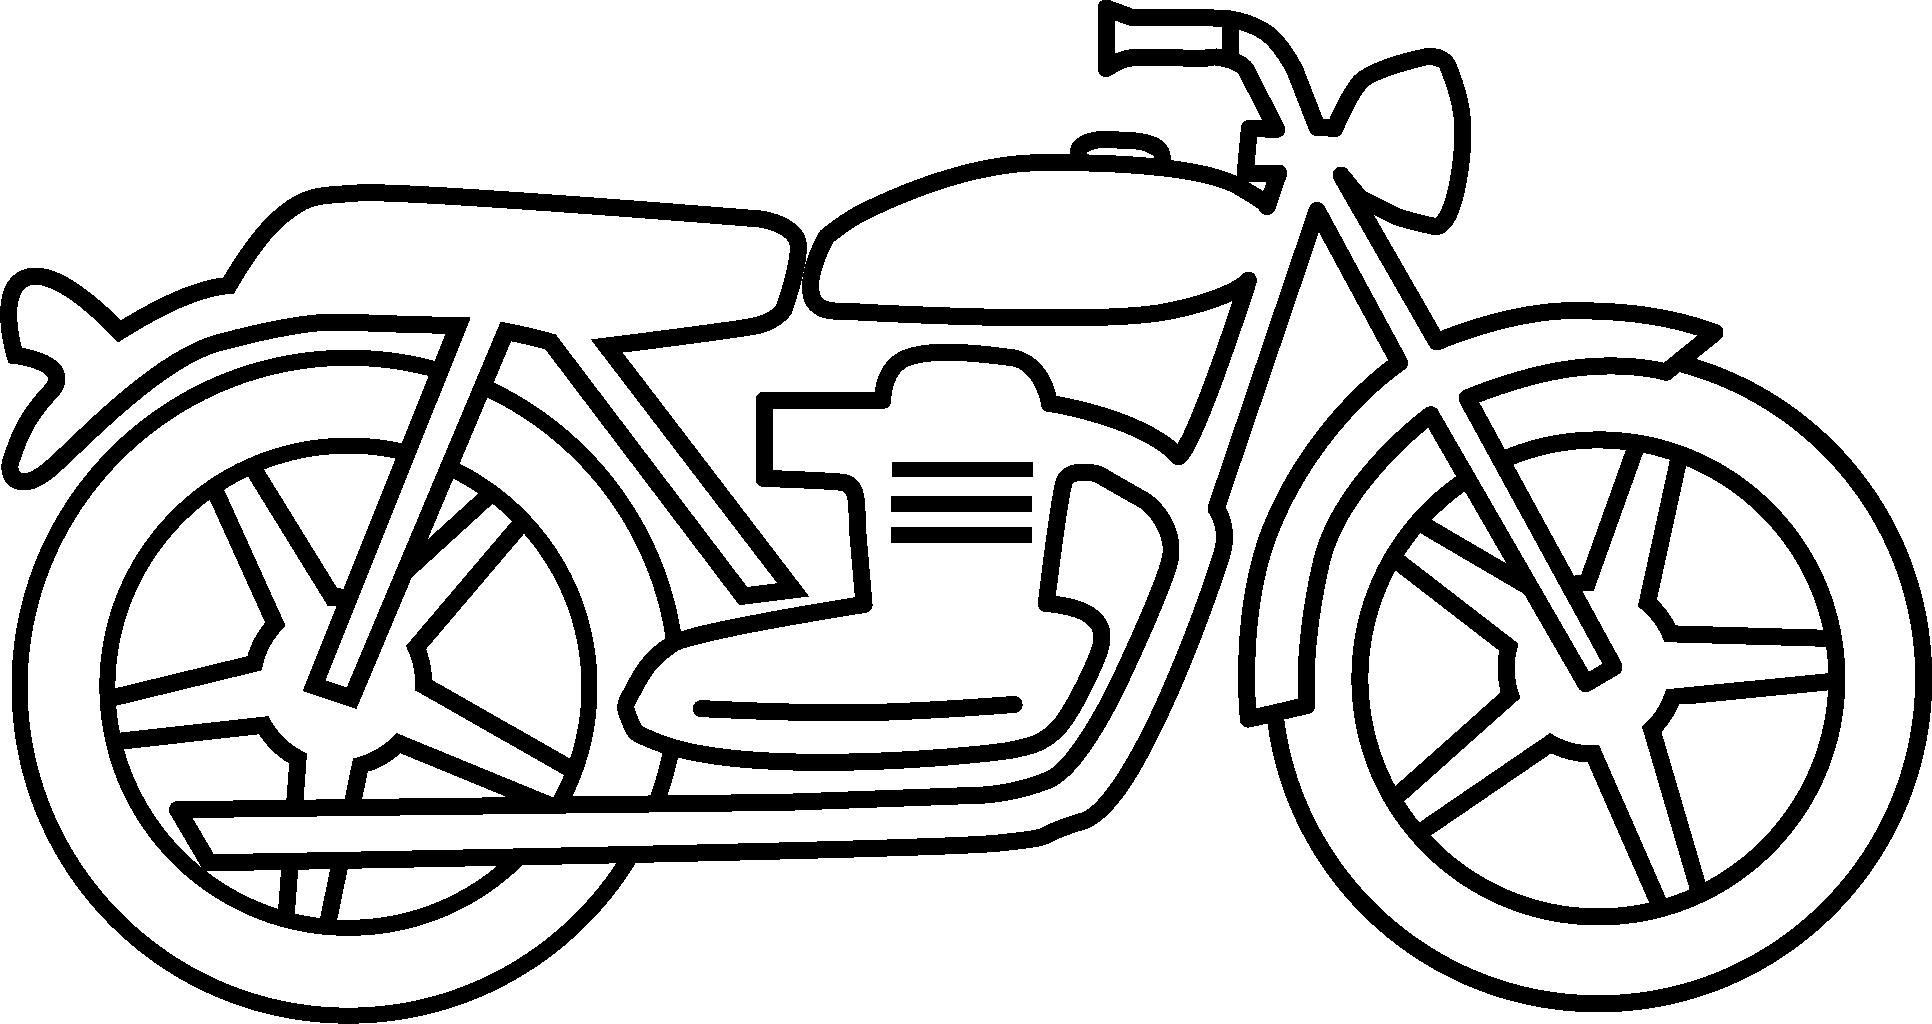 I Will Create Simple Black And White Line Art And Illustration In 2021 Motorcycle Drawing Bike Drawing Simple Car Drawing